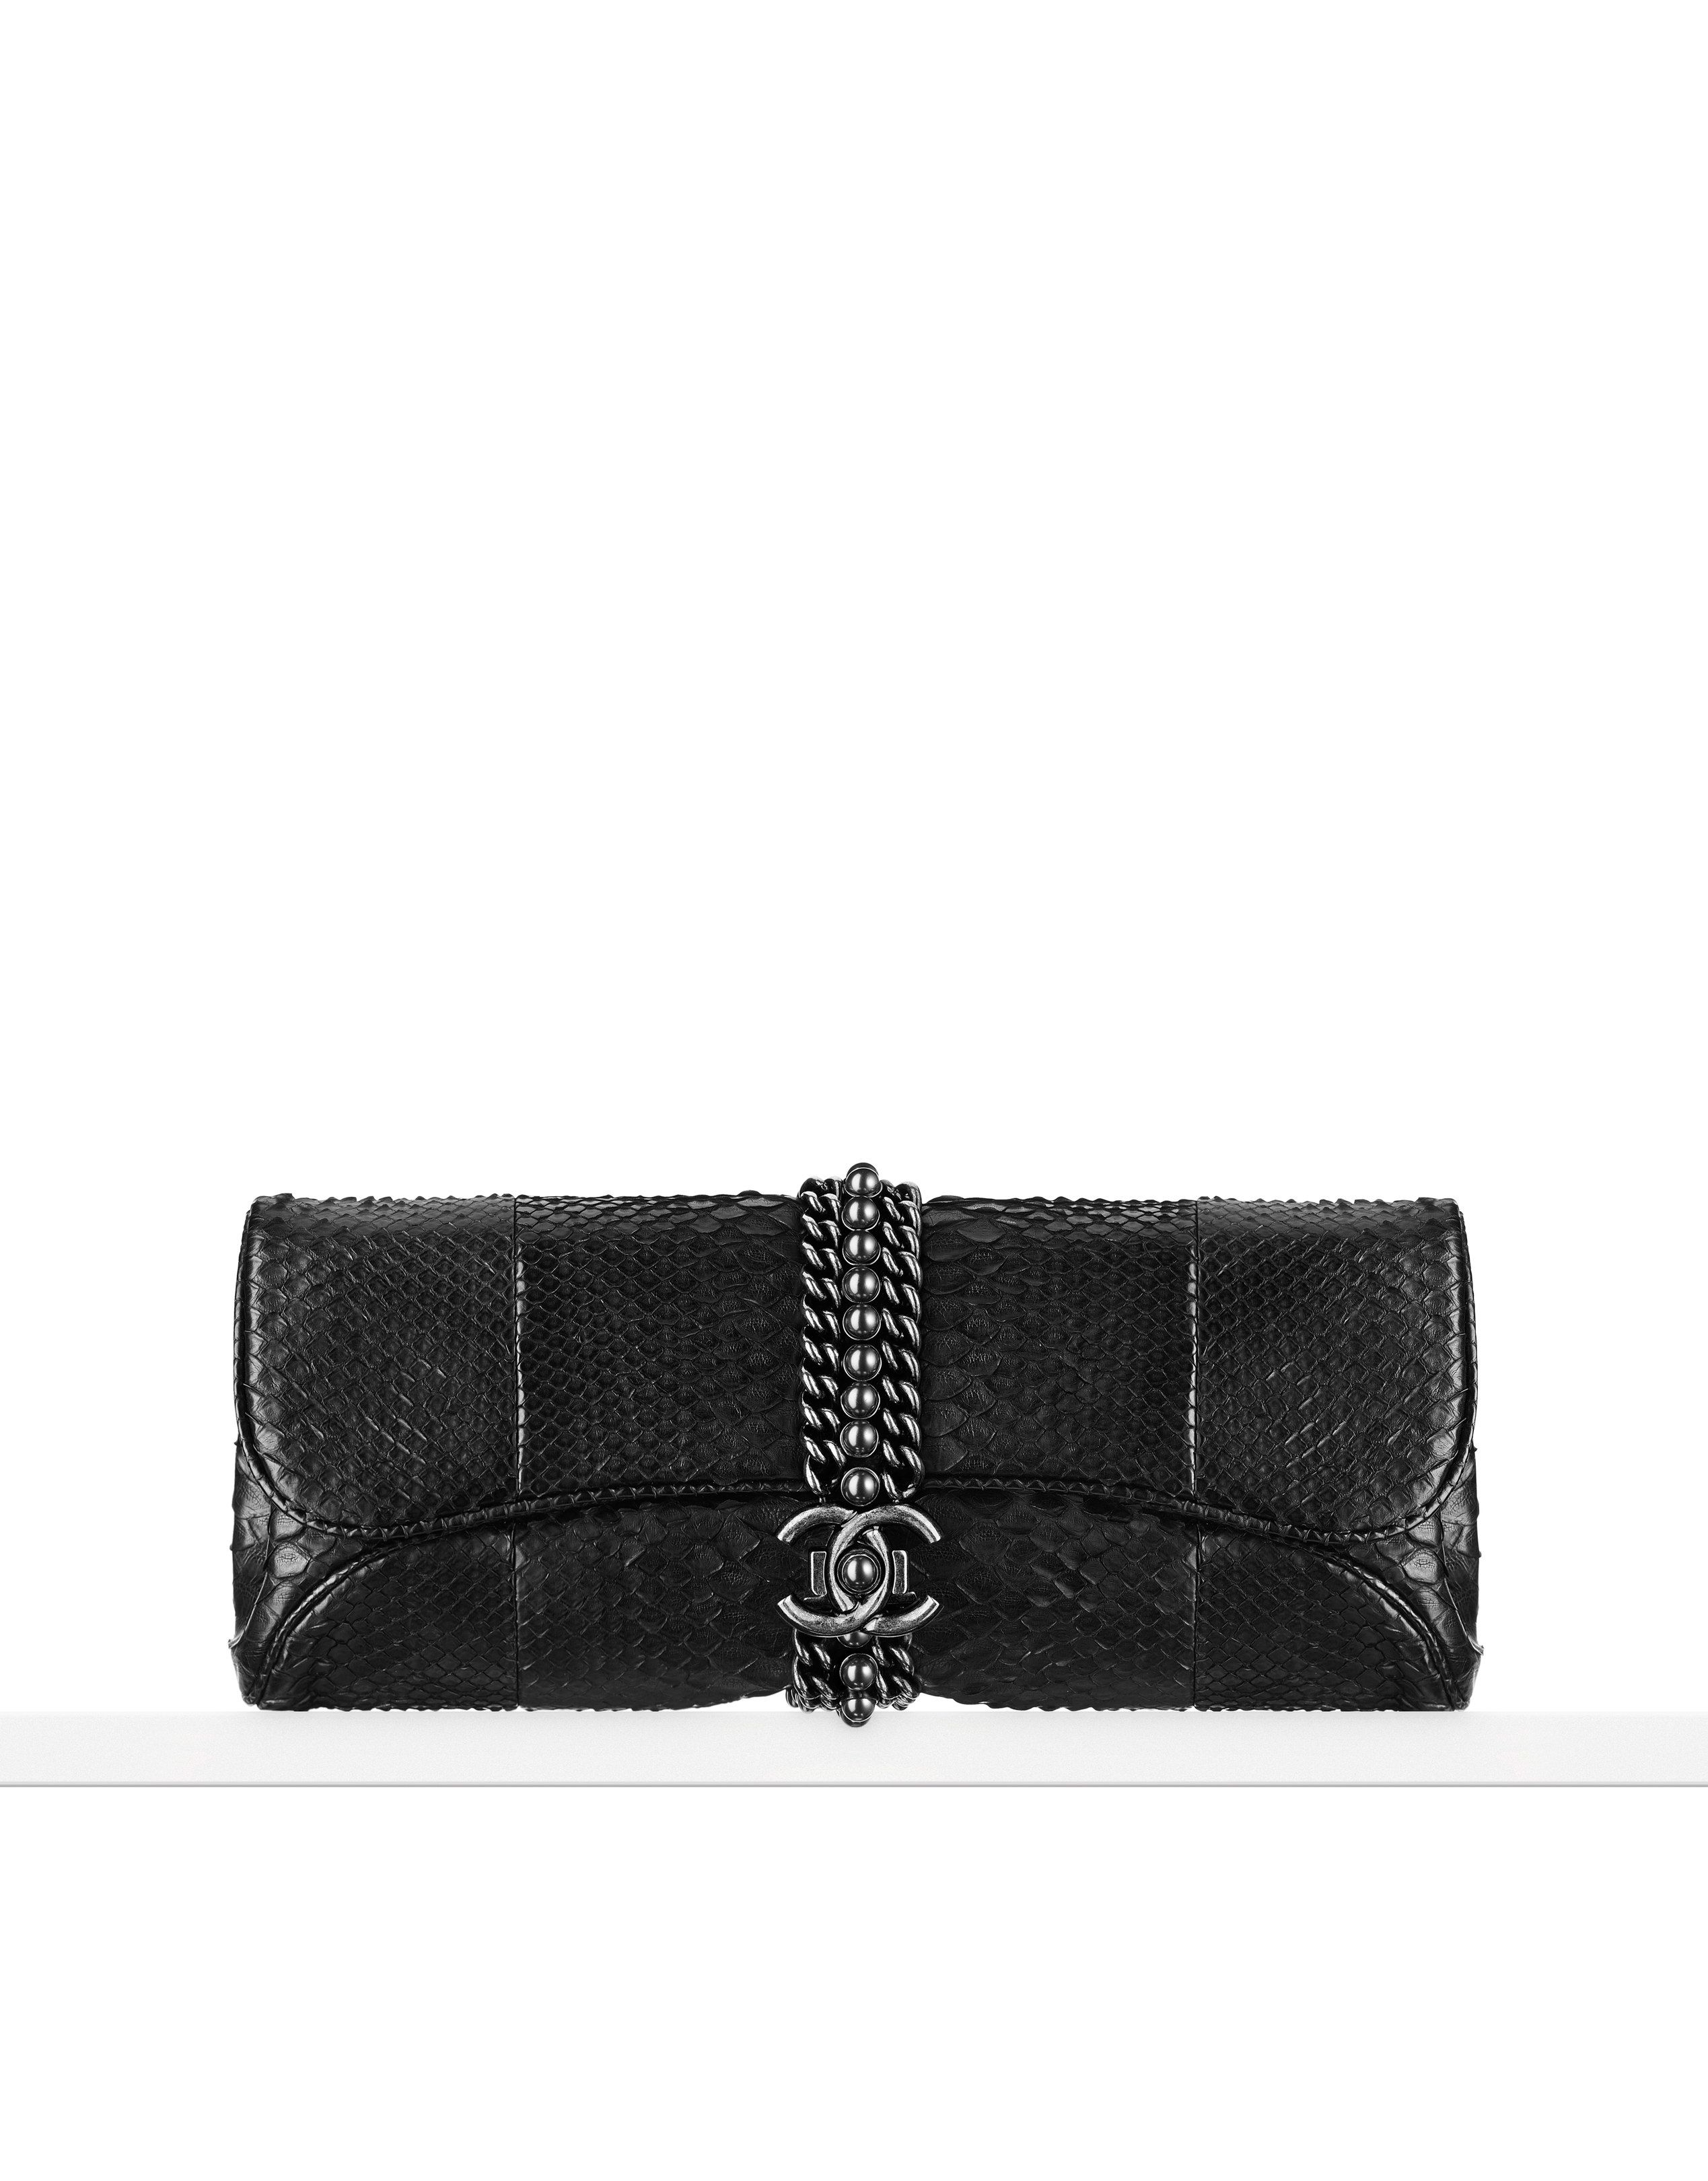 Aged calfskin flap bag embellished... - CHANEL. Python evening ... 827325ebbc1ef